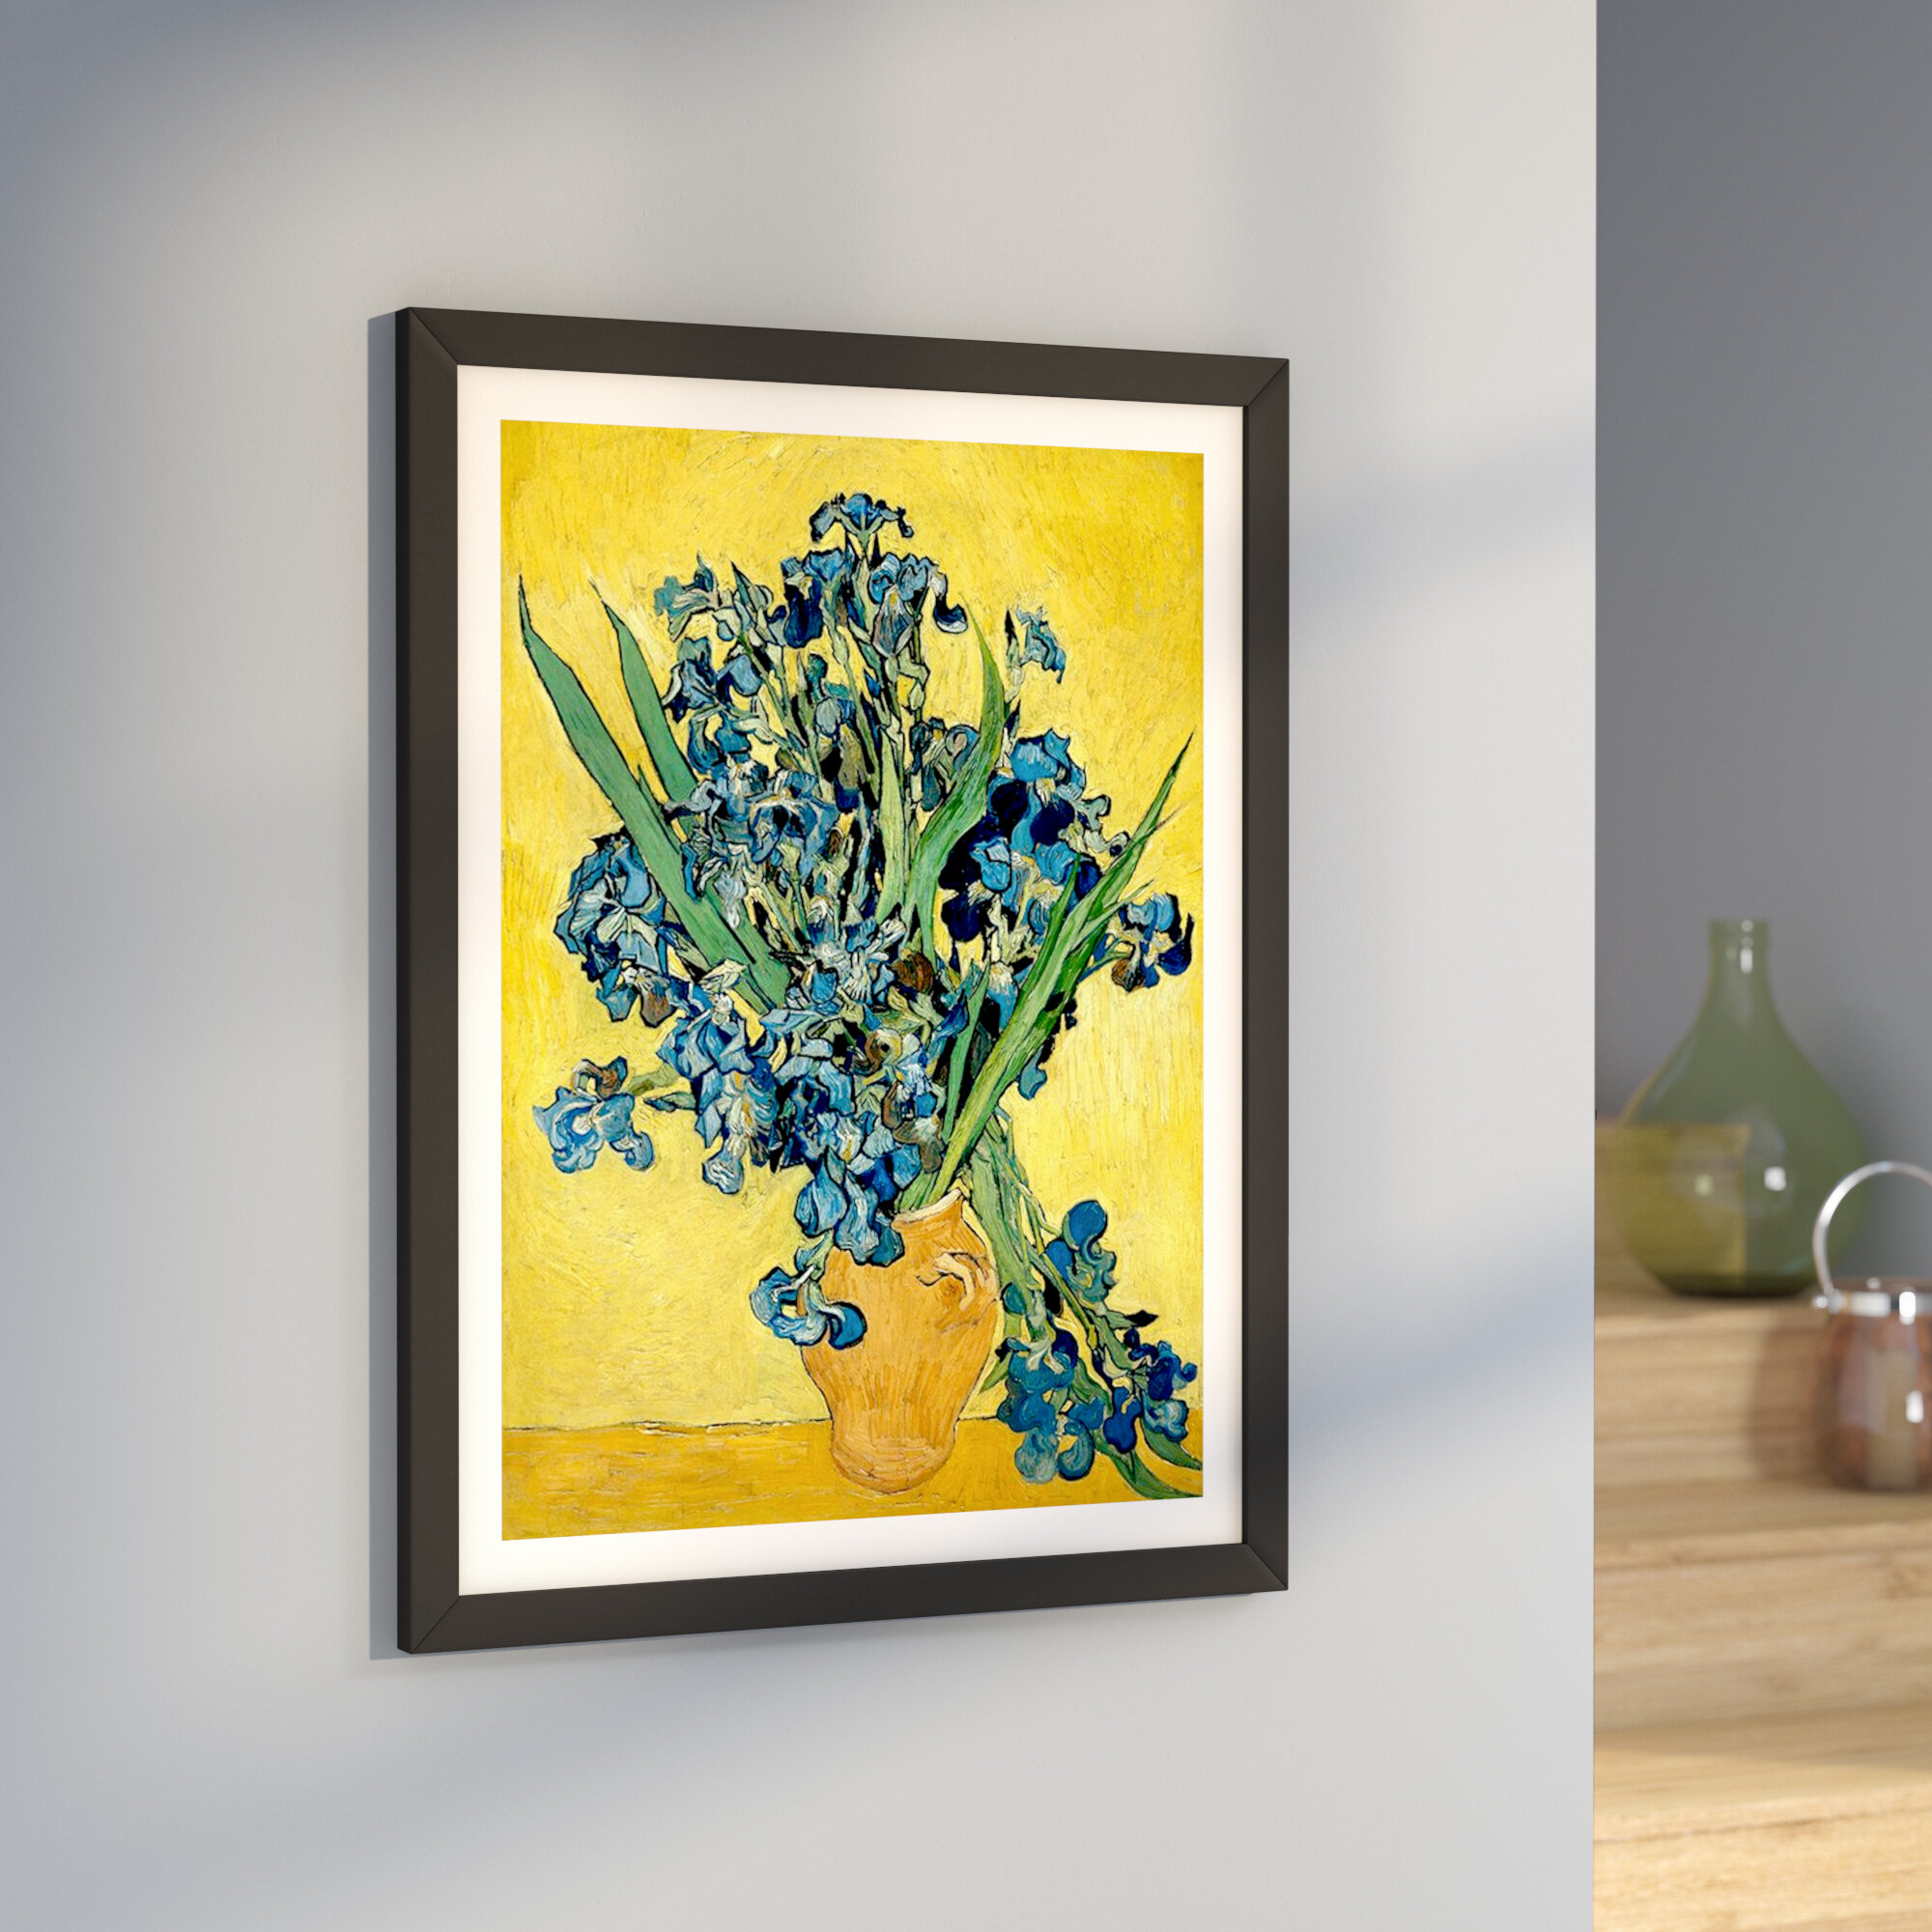 East urban home vase with irises against a yellow background by east urban home vase with irises against a yellow background by vincent van gogh graphic art print reviews wayfair reviewsmspy